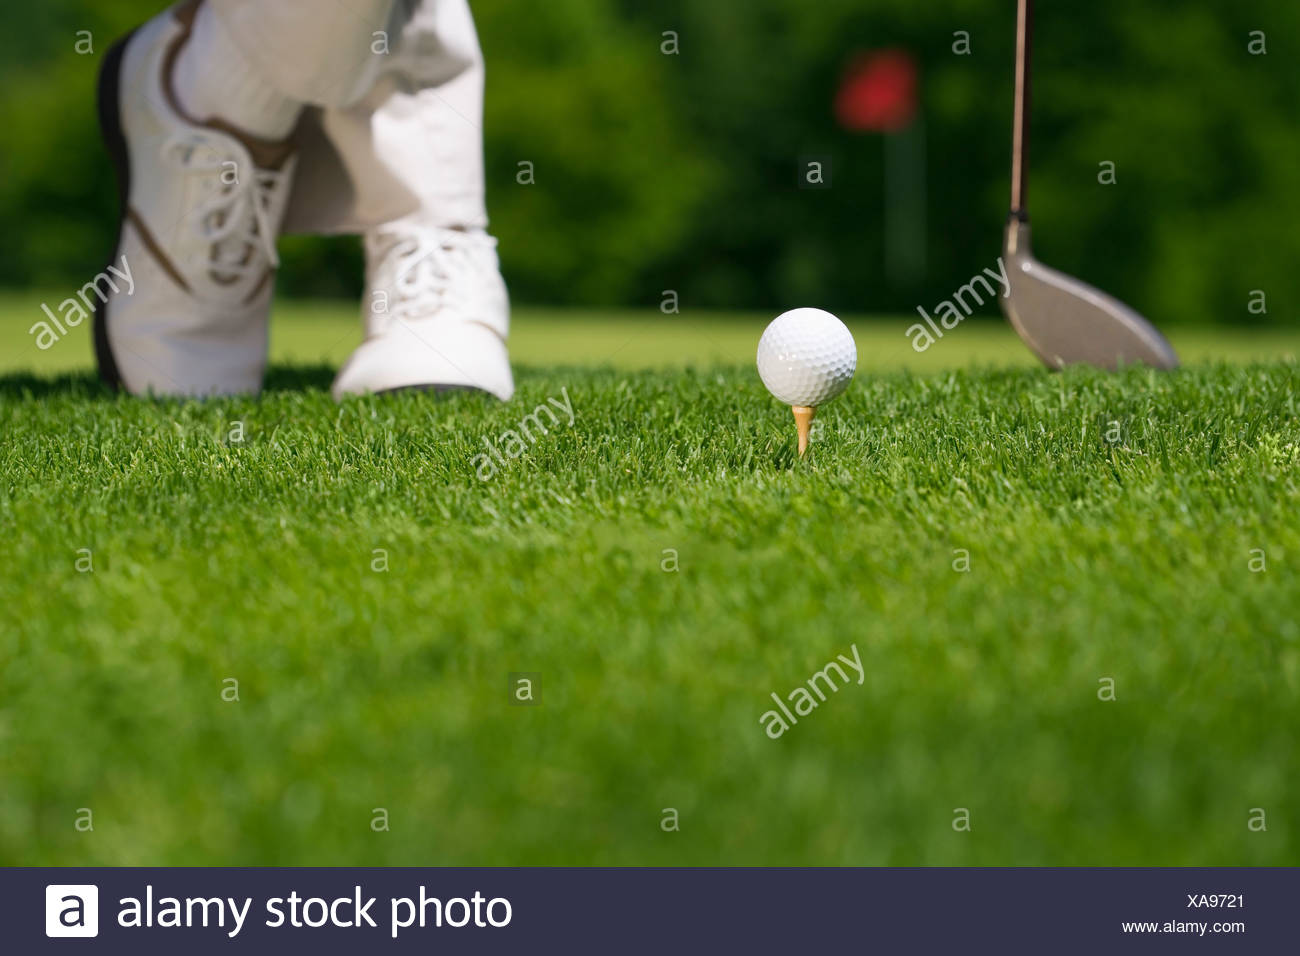 Golfer preparing to tee off - Stock Image